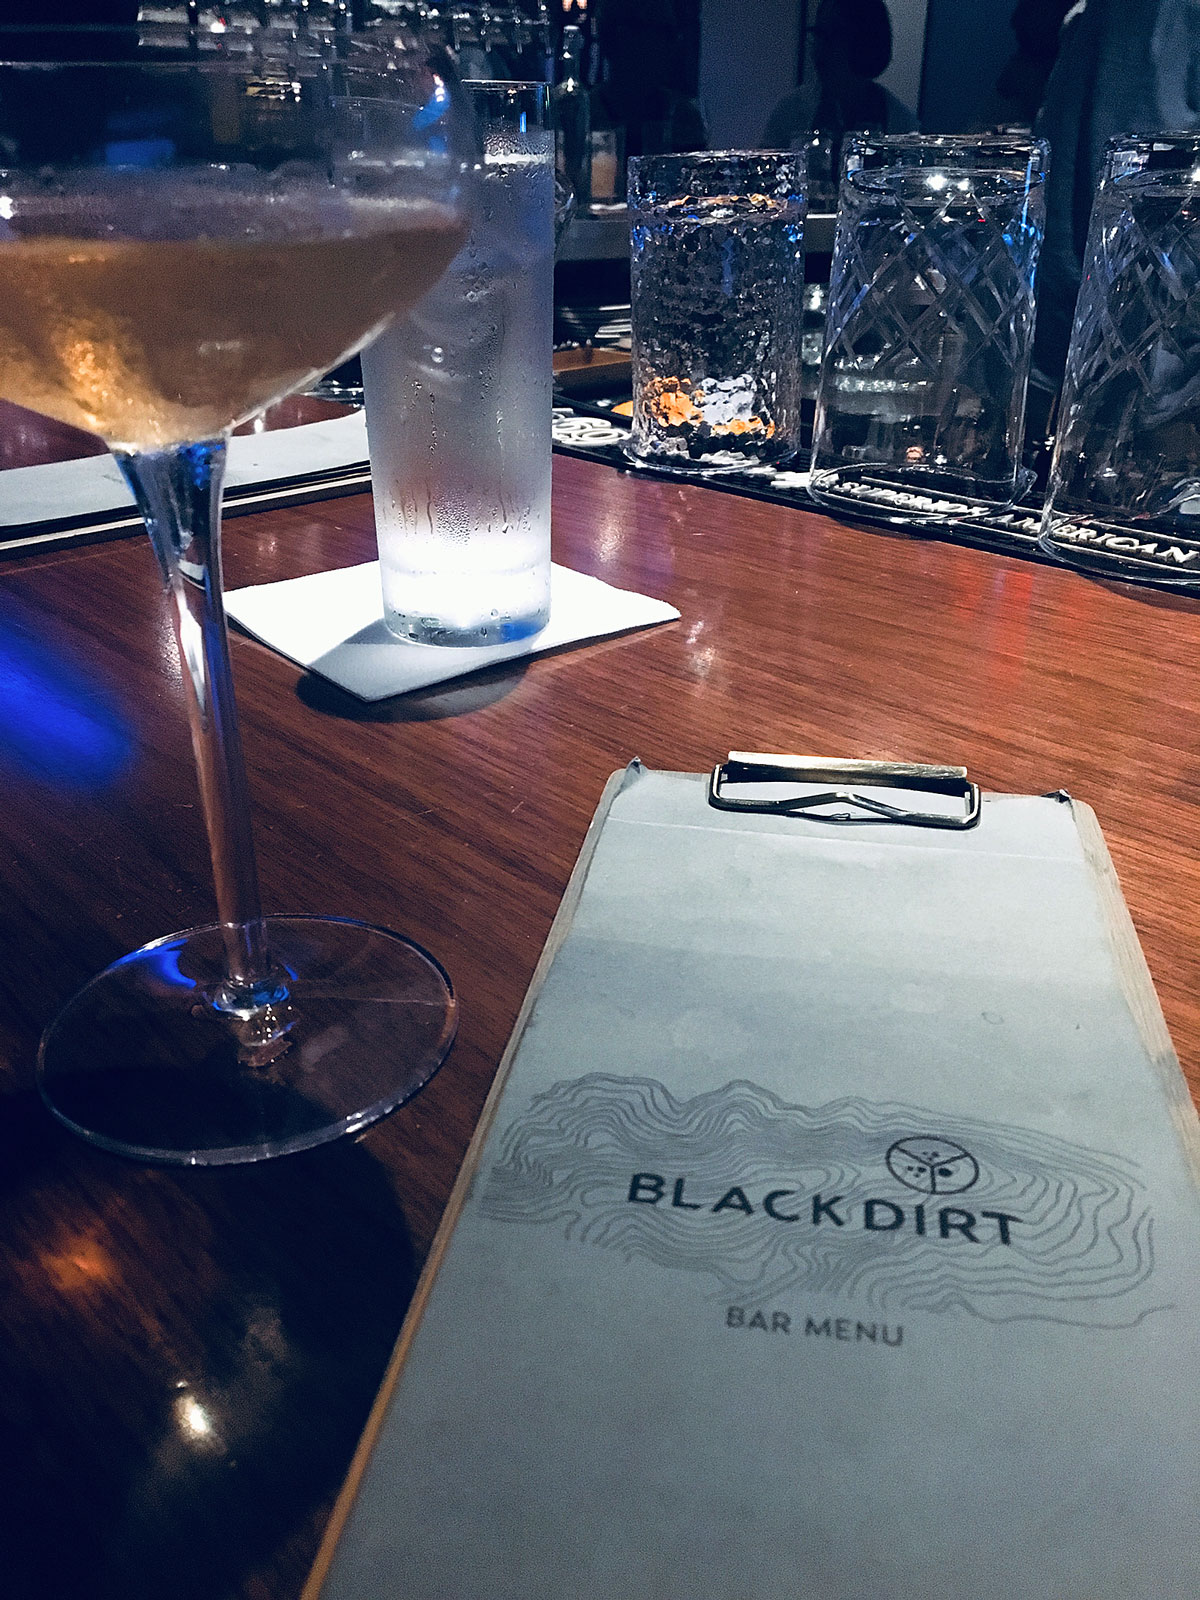 Black Dirt bar menu